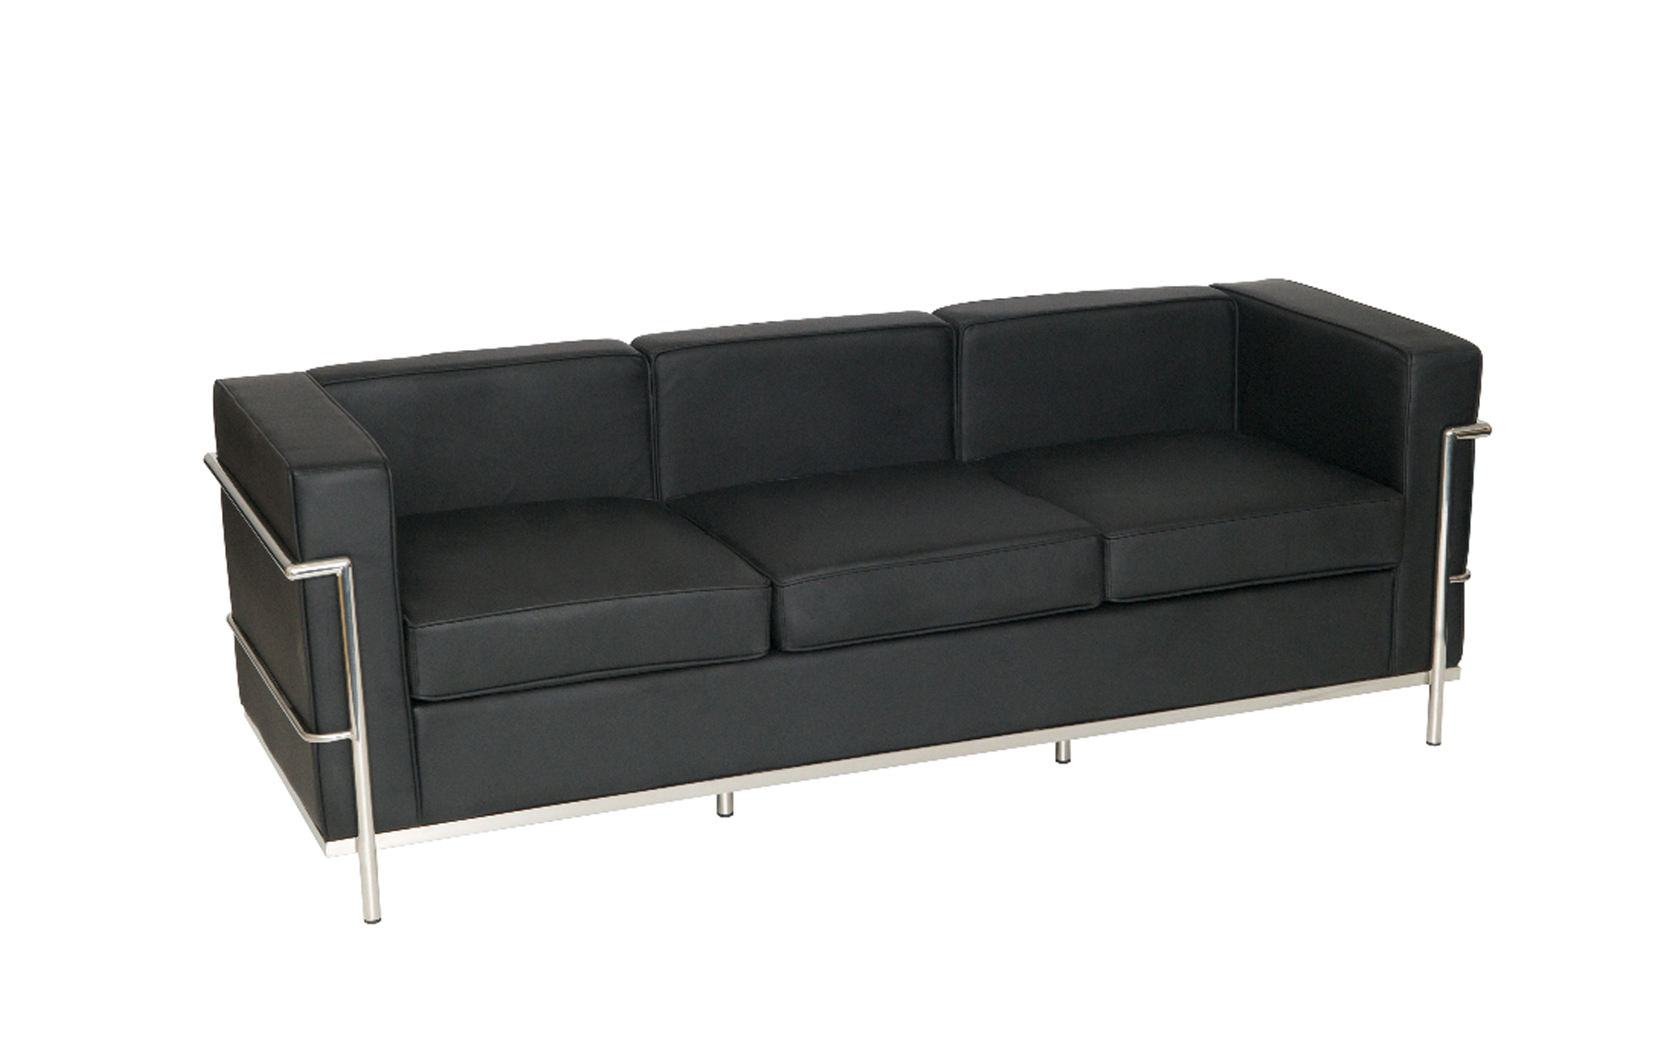 le corbusier style three seater sofa sj009 3 somercotes office furniture ltd. Black Bedroom Furniture Sets. Home Design Ideas